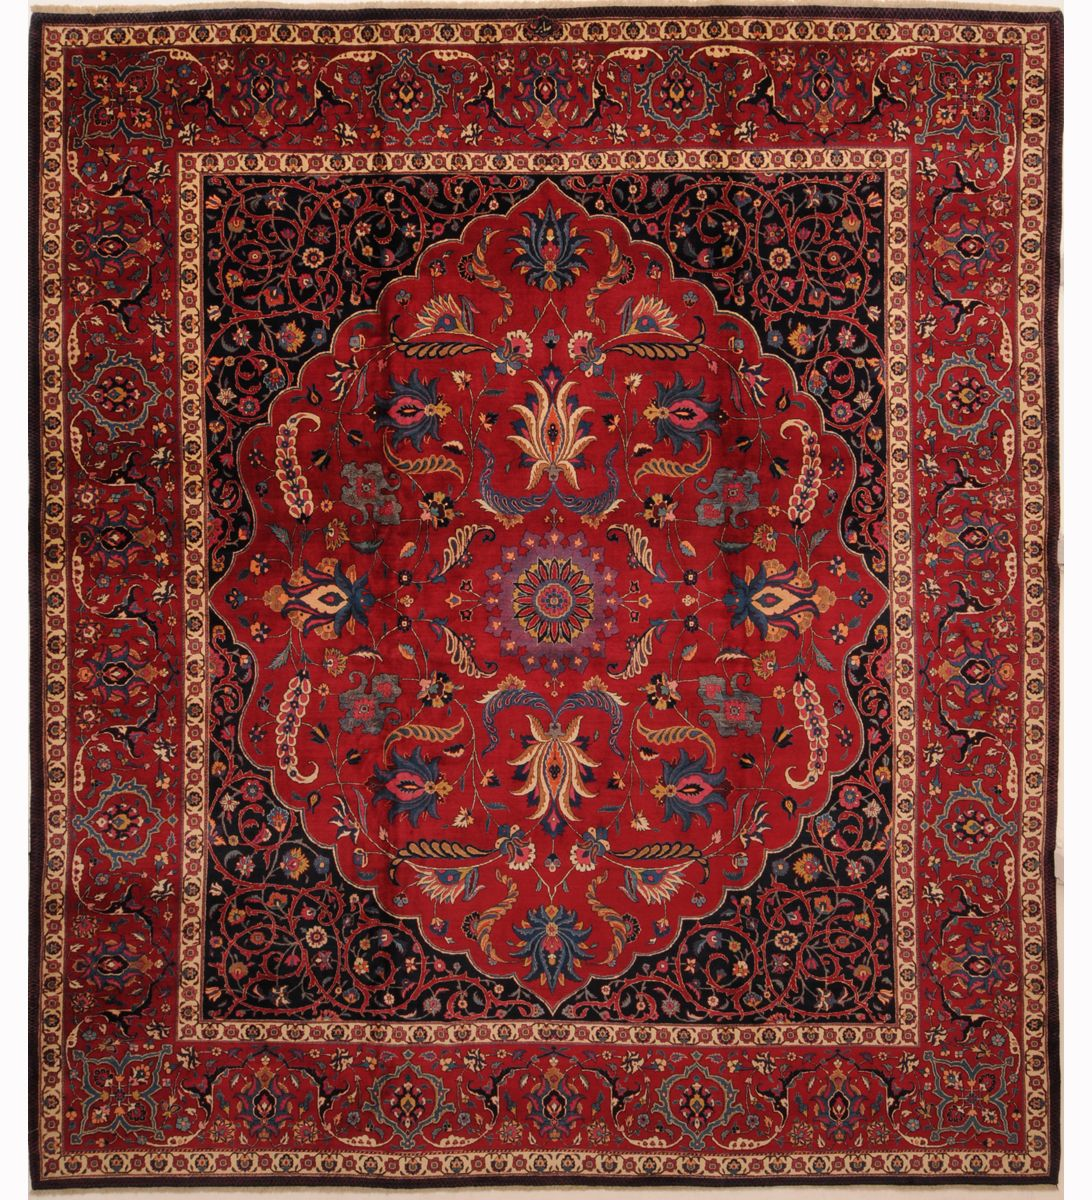 Persian rug google search pictures designs drawings u doodles